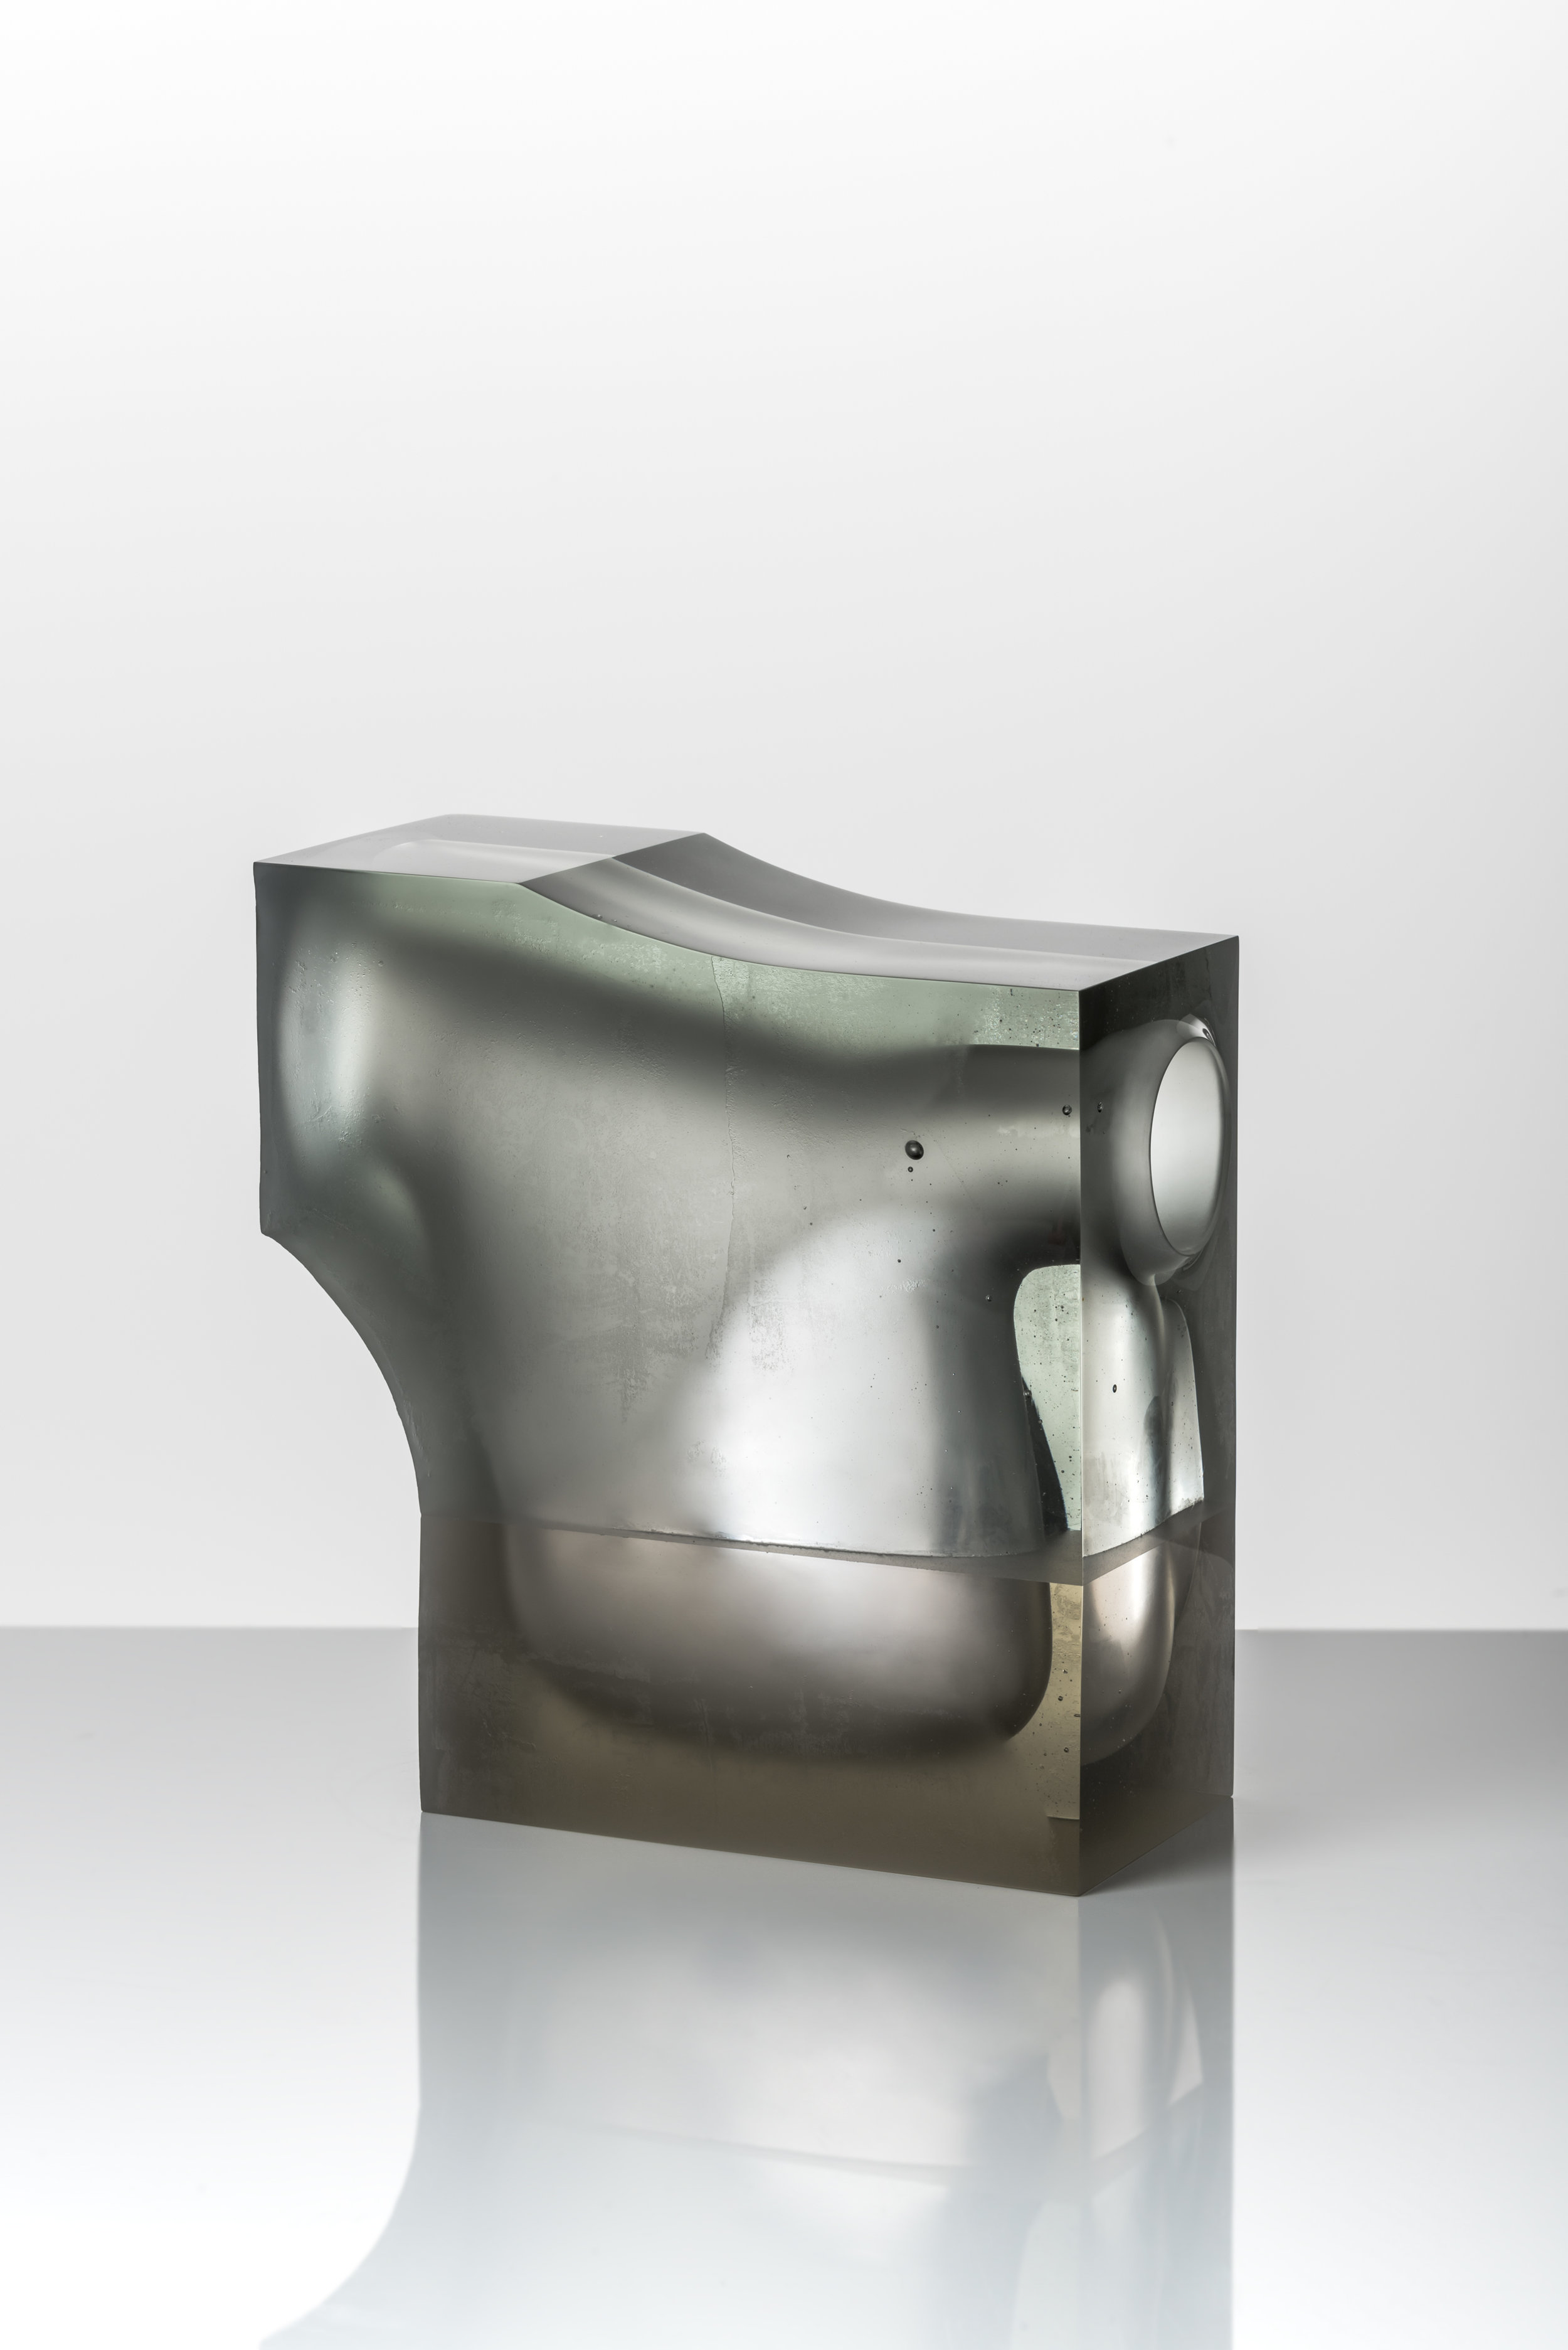 Richard Whiteley,  Push – Pull , 2017, cast and coldworked glass, 28 x 28 x 12.5 cm. Photos: Greg Piper.